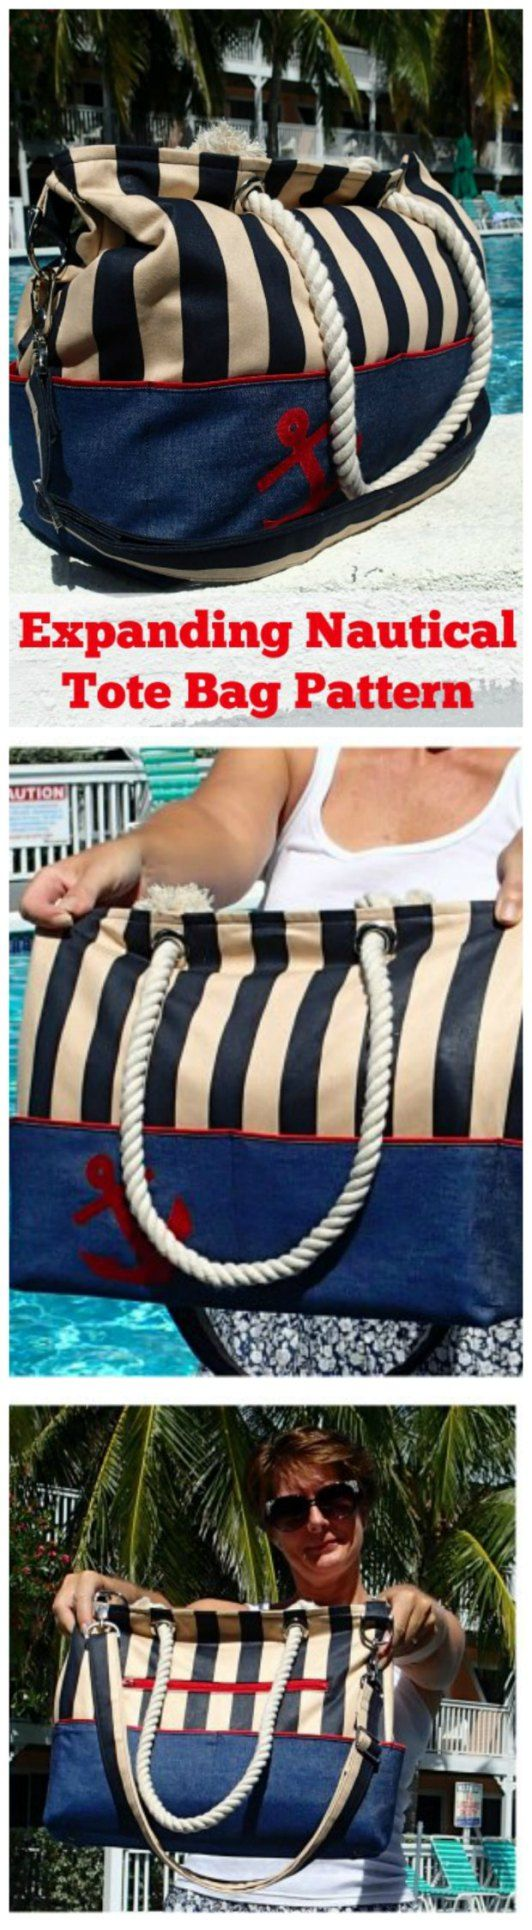 I love how this fun beach bag has expanding sides. Keeps the bag neat when you…